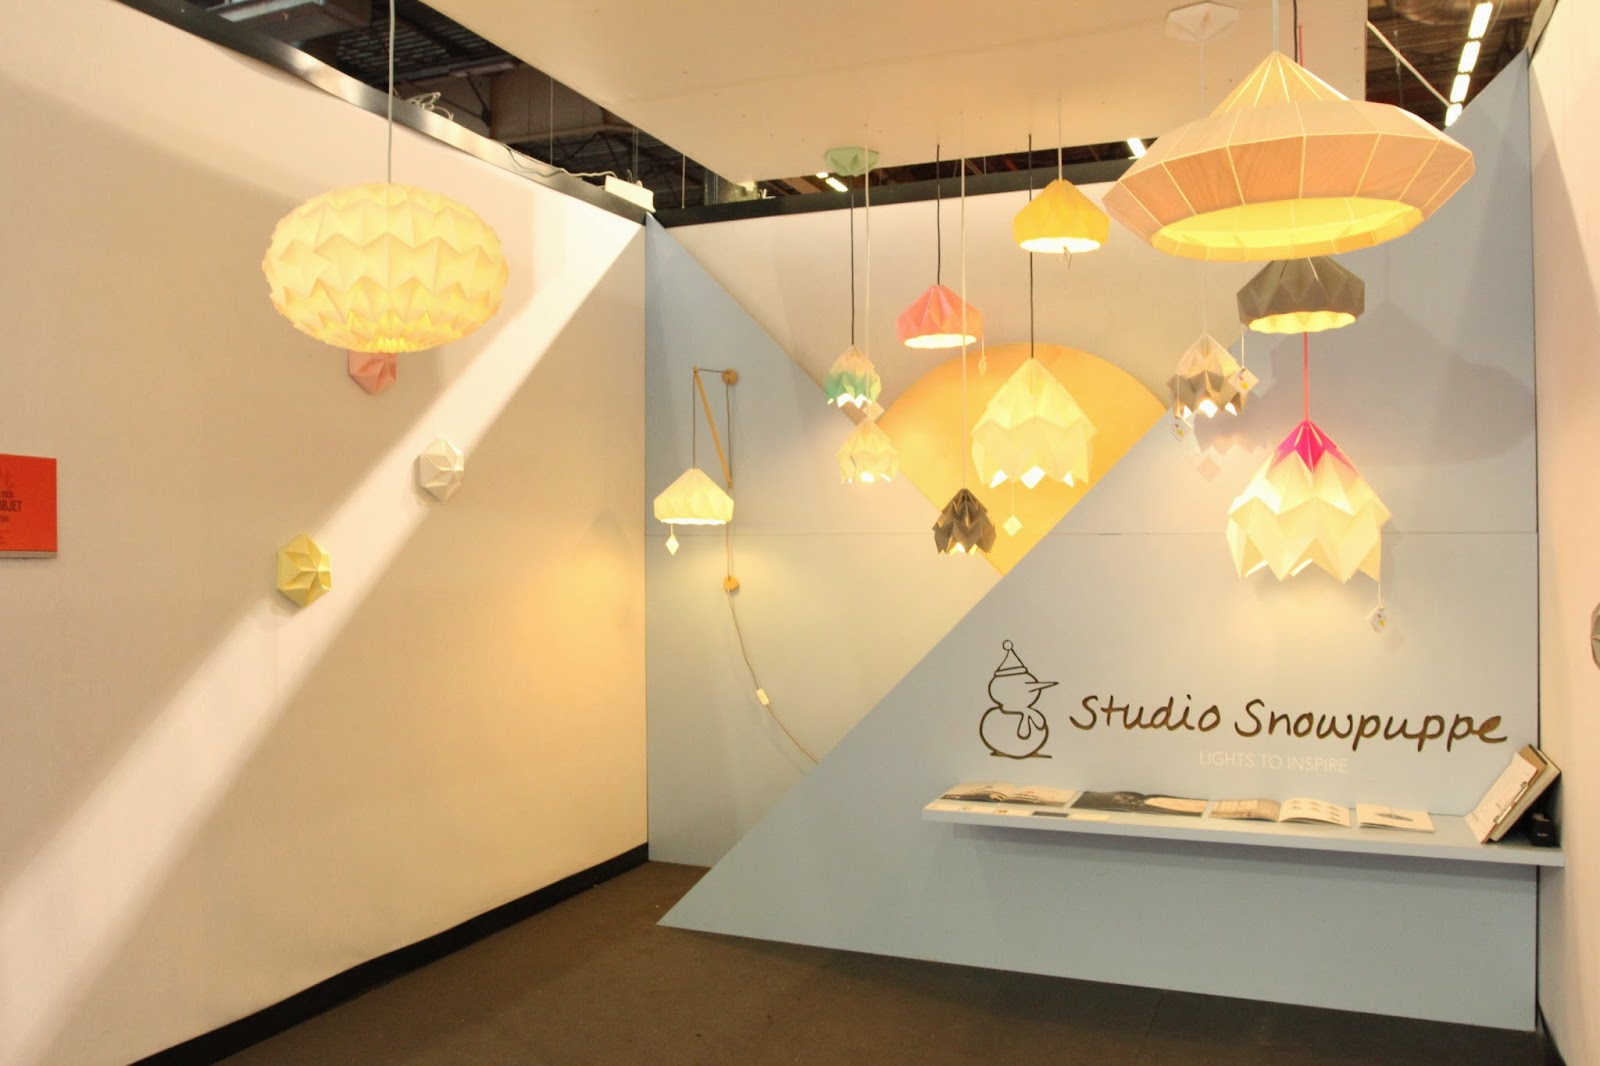 Studio Snowpuppe Lamp : Studio snowpuppe inspiration stories